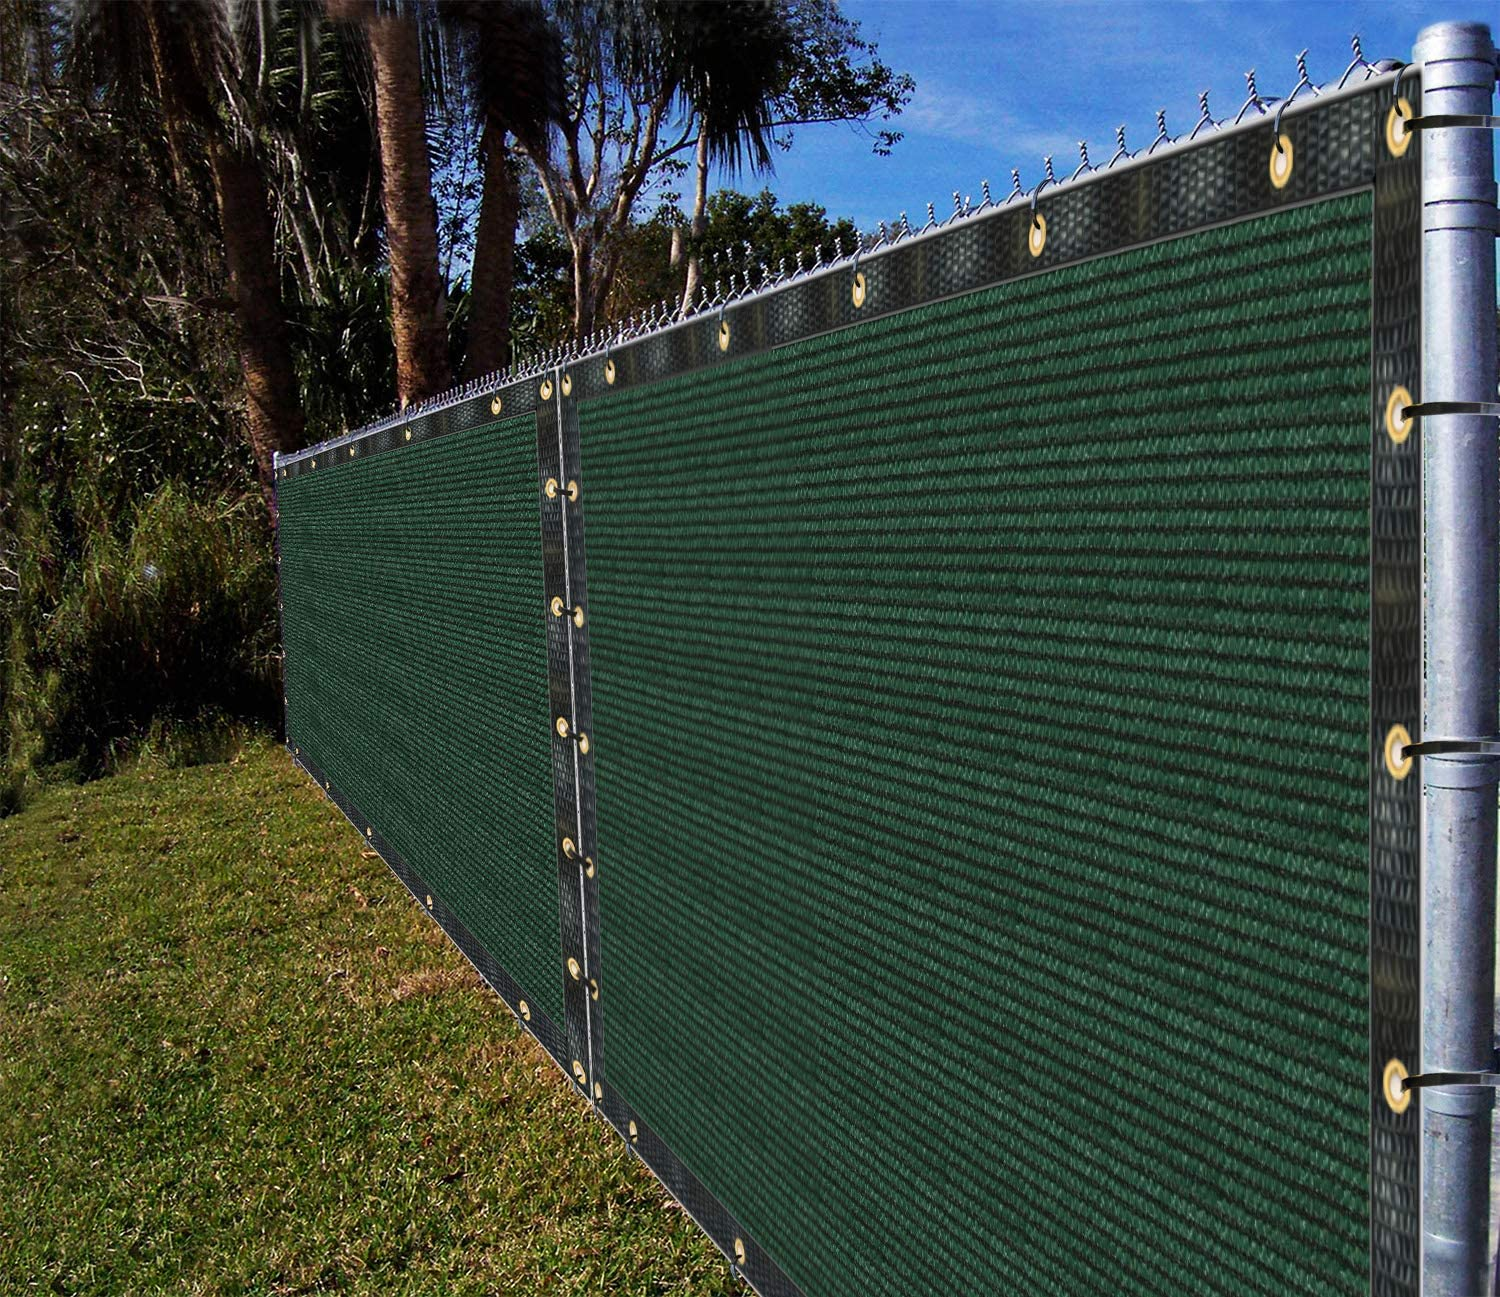 Ifenceview 6'x1' to 6'x50' Green Cloth Shade Easy-to-use Scree Fence Privacy Excellence